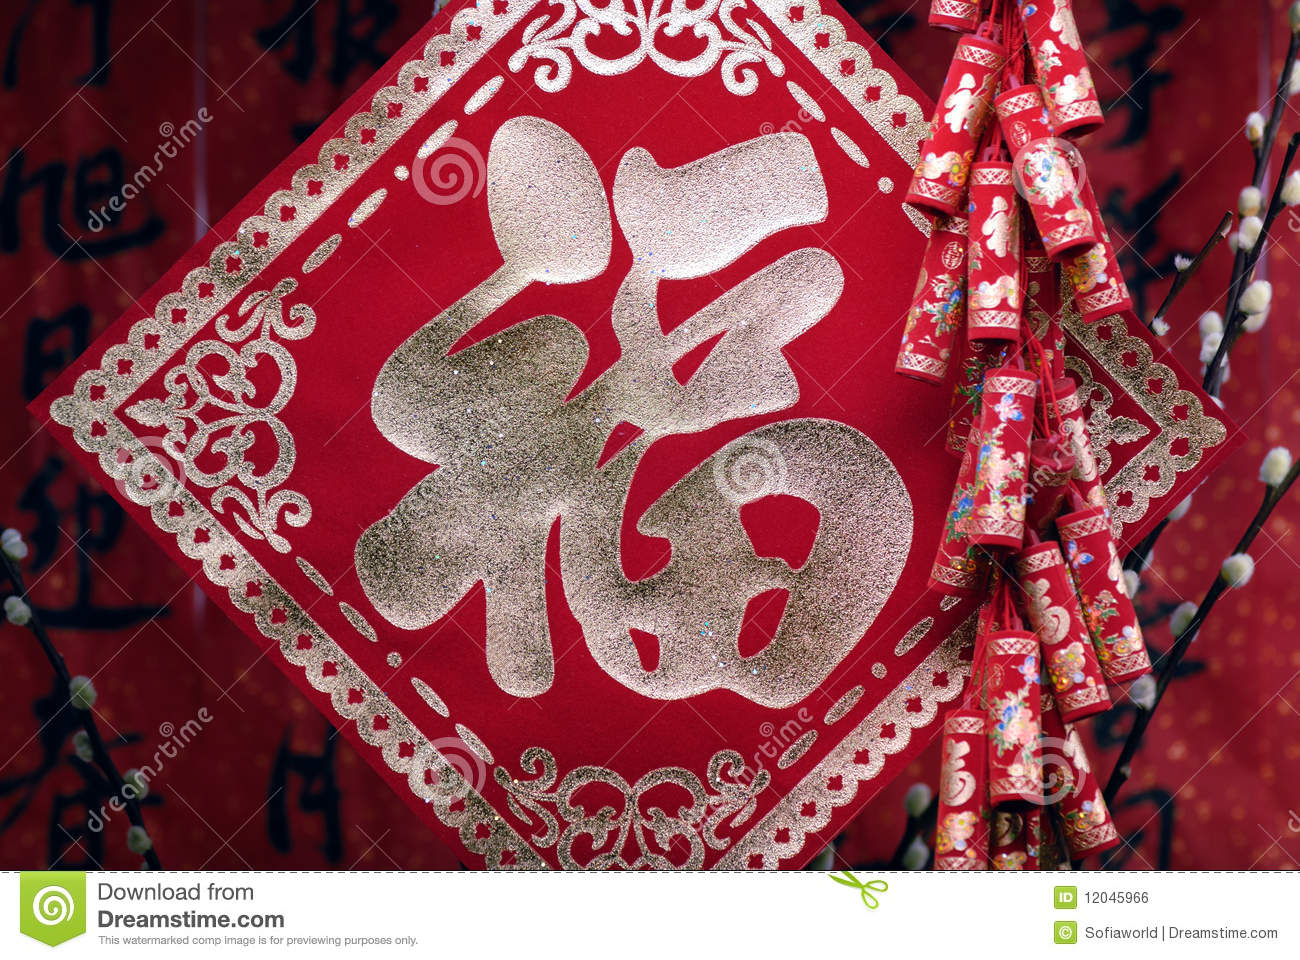 Chinese lunar new year decoration royalty free stock image - Lunar new year decorations ...